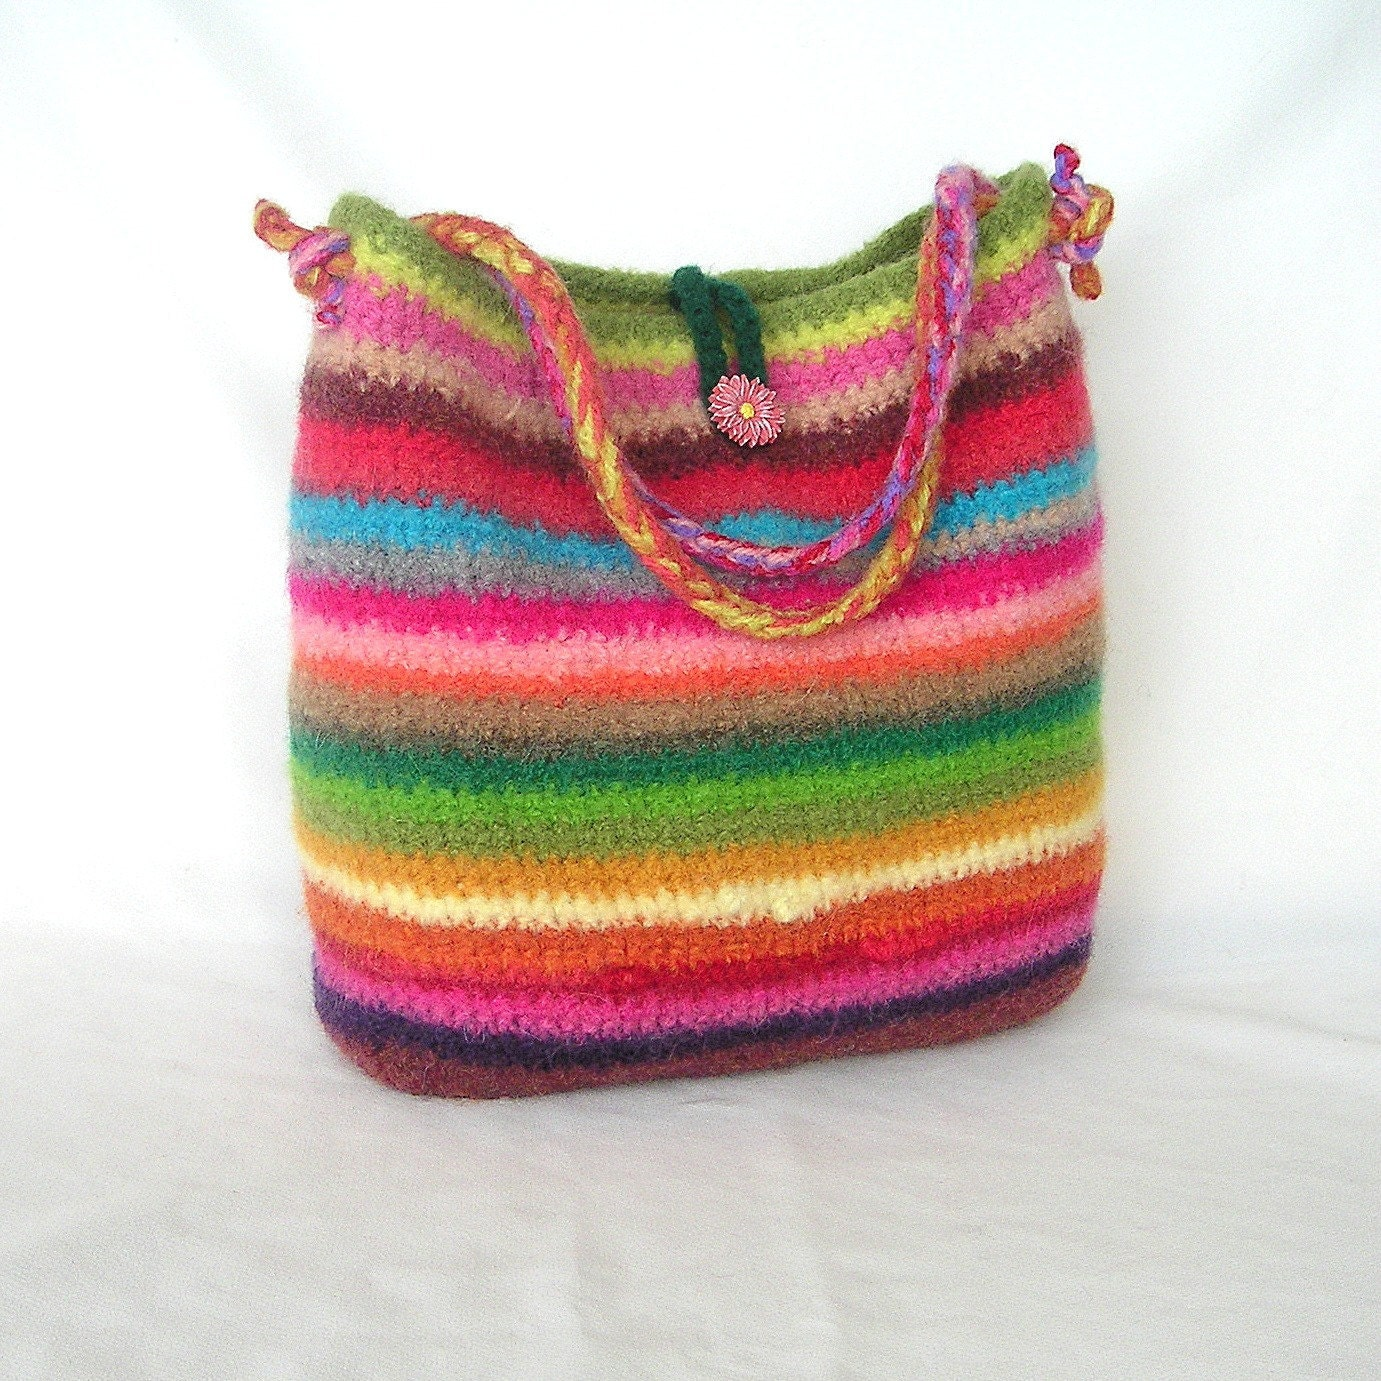 Rainbow Felted Bag Crochet Pattern by GraceKnittingPattern on Etsy